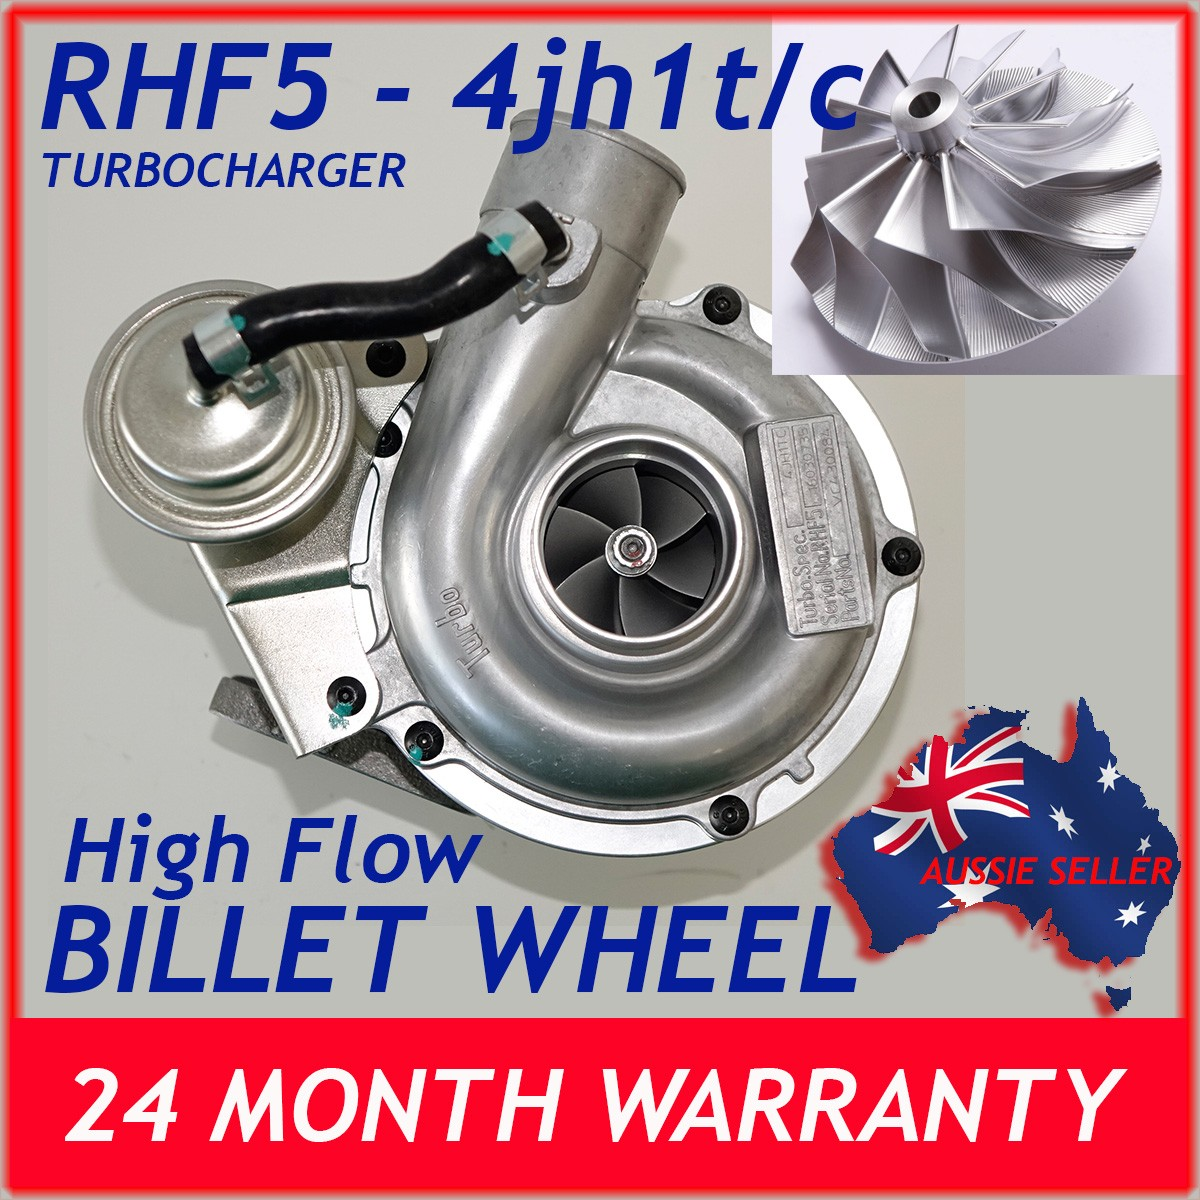 holden-isuzu-rodeo-rhf5-vidw-viek-4jhit-turbocharger-compressor-billet-wheel